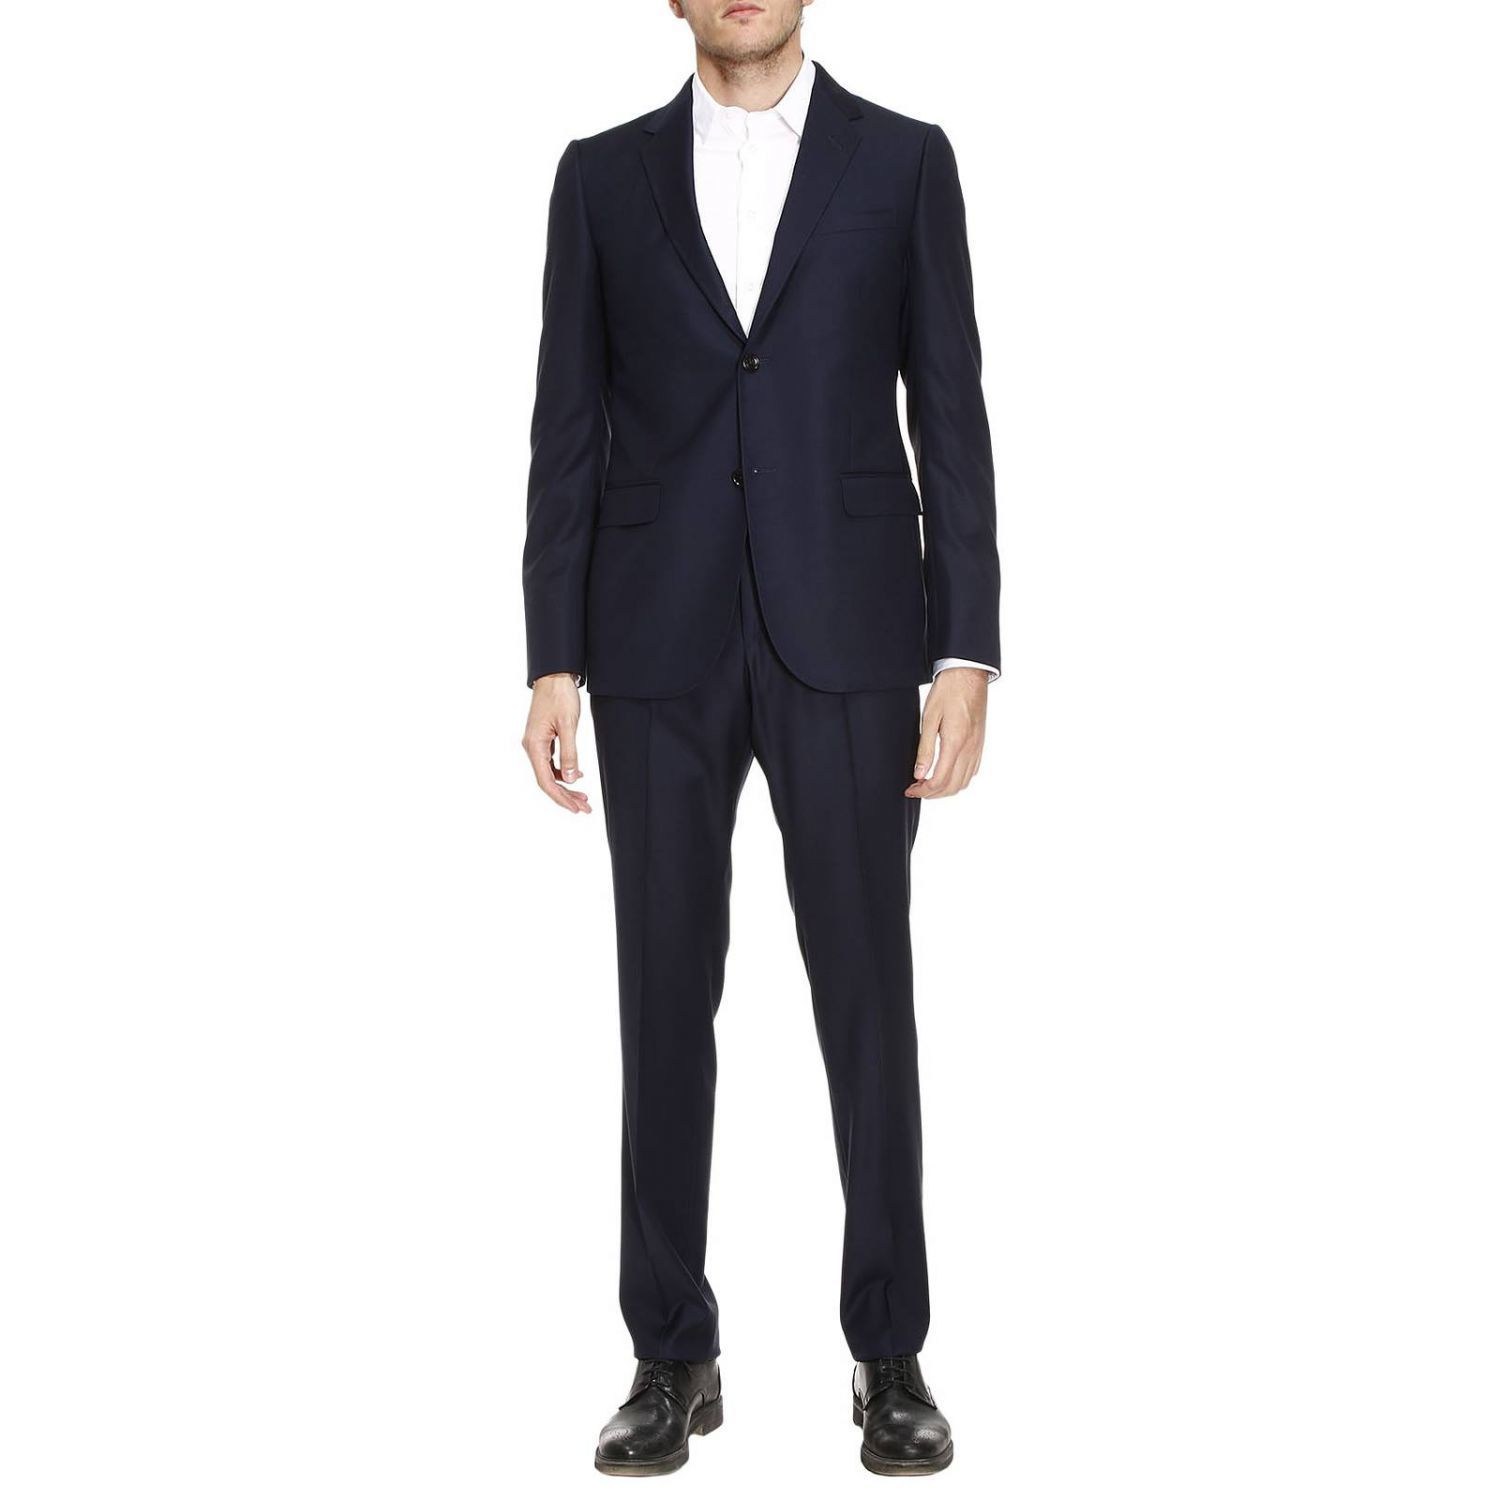 Suit Two-button Monaco Suit In Worsted Wool With 19 Bottom